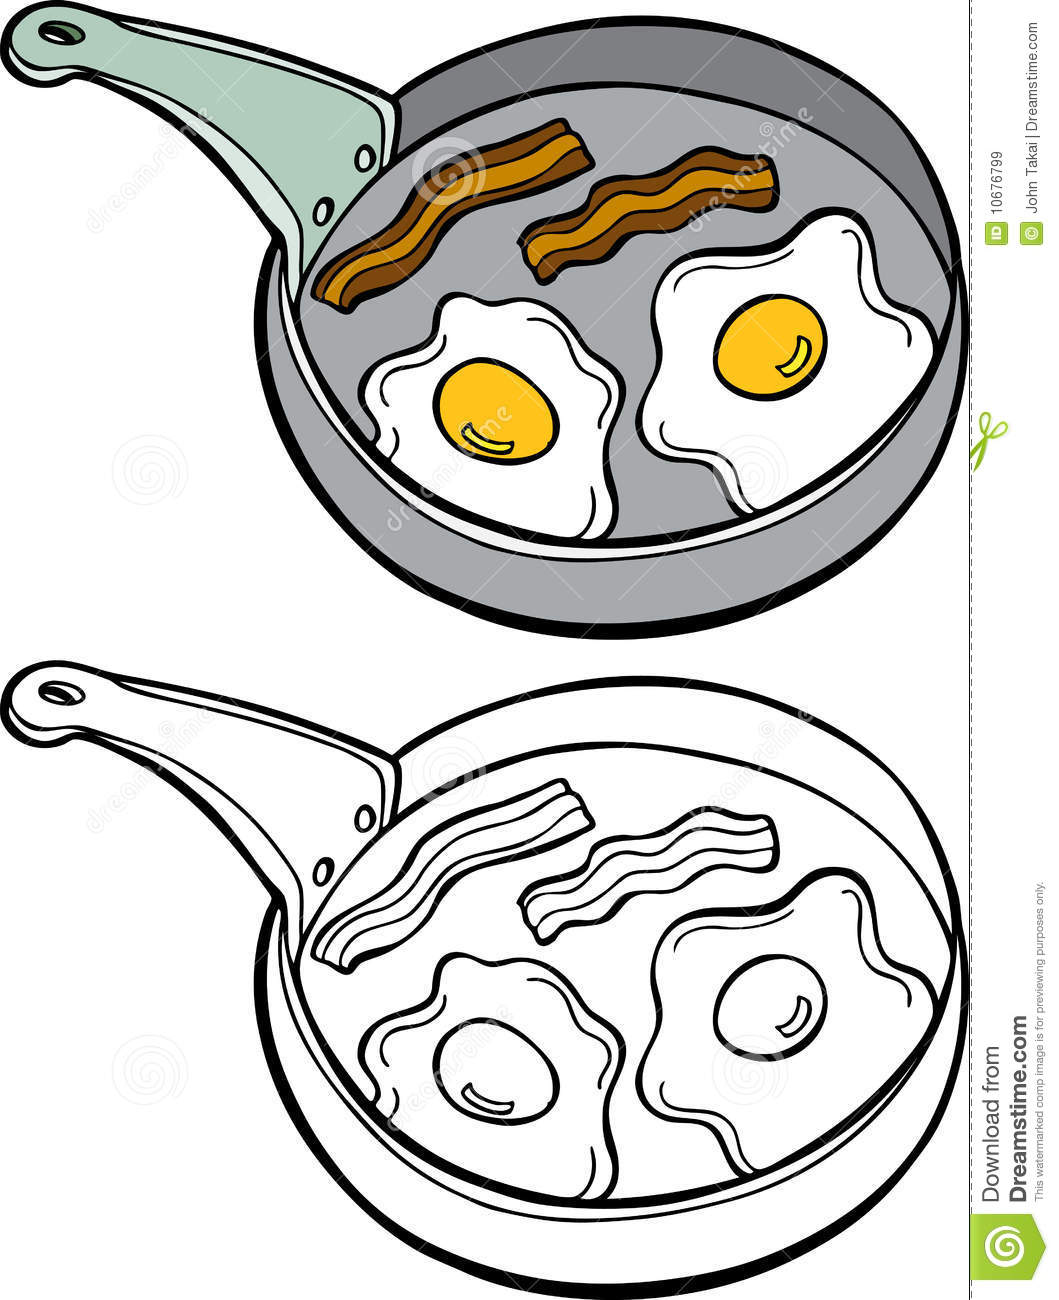 Bacon And Eggs Royalty Free Stock Images - Image: 10676799